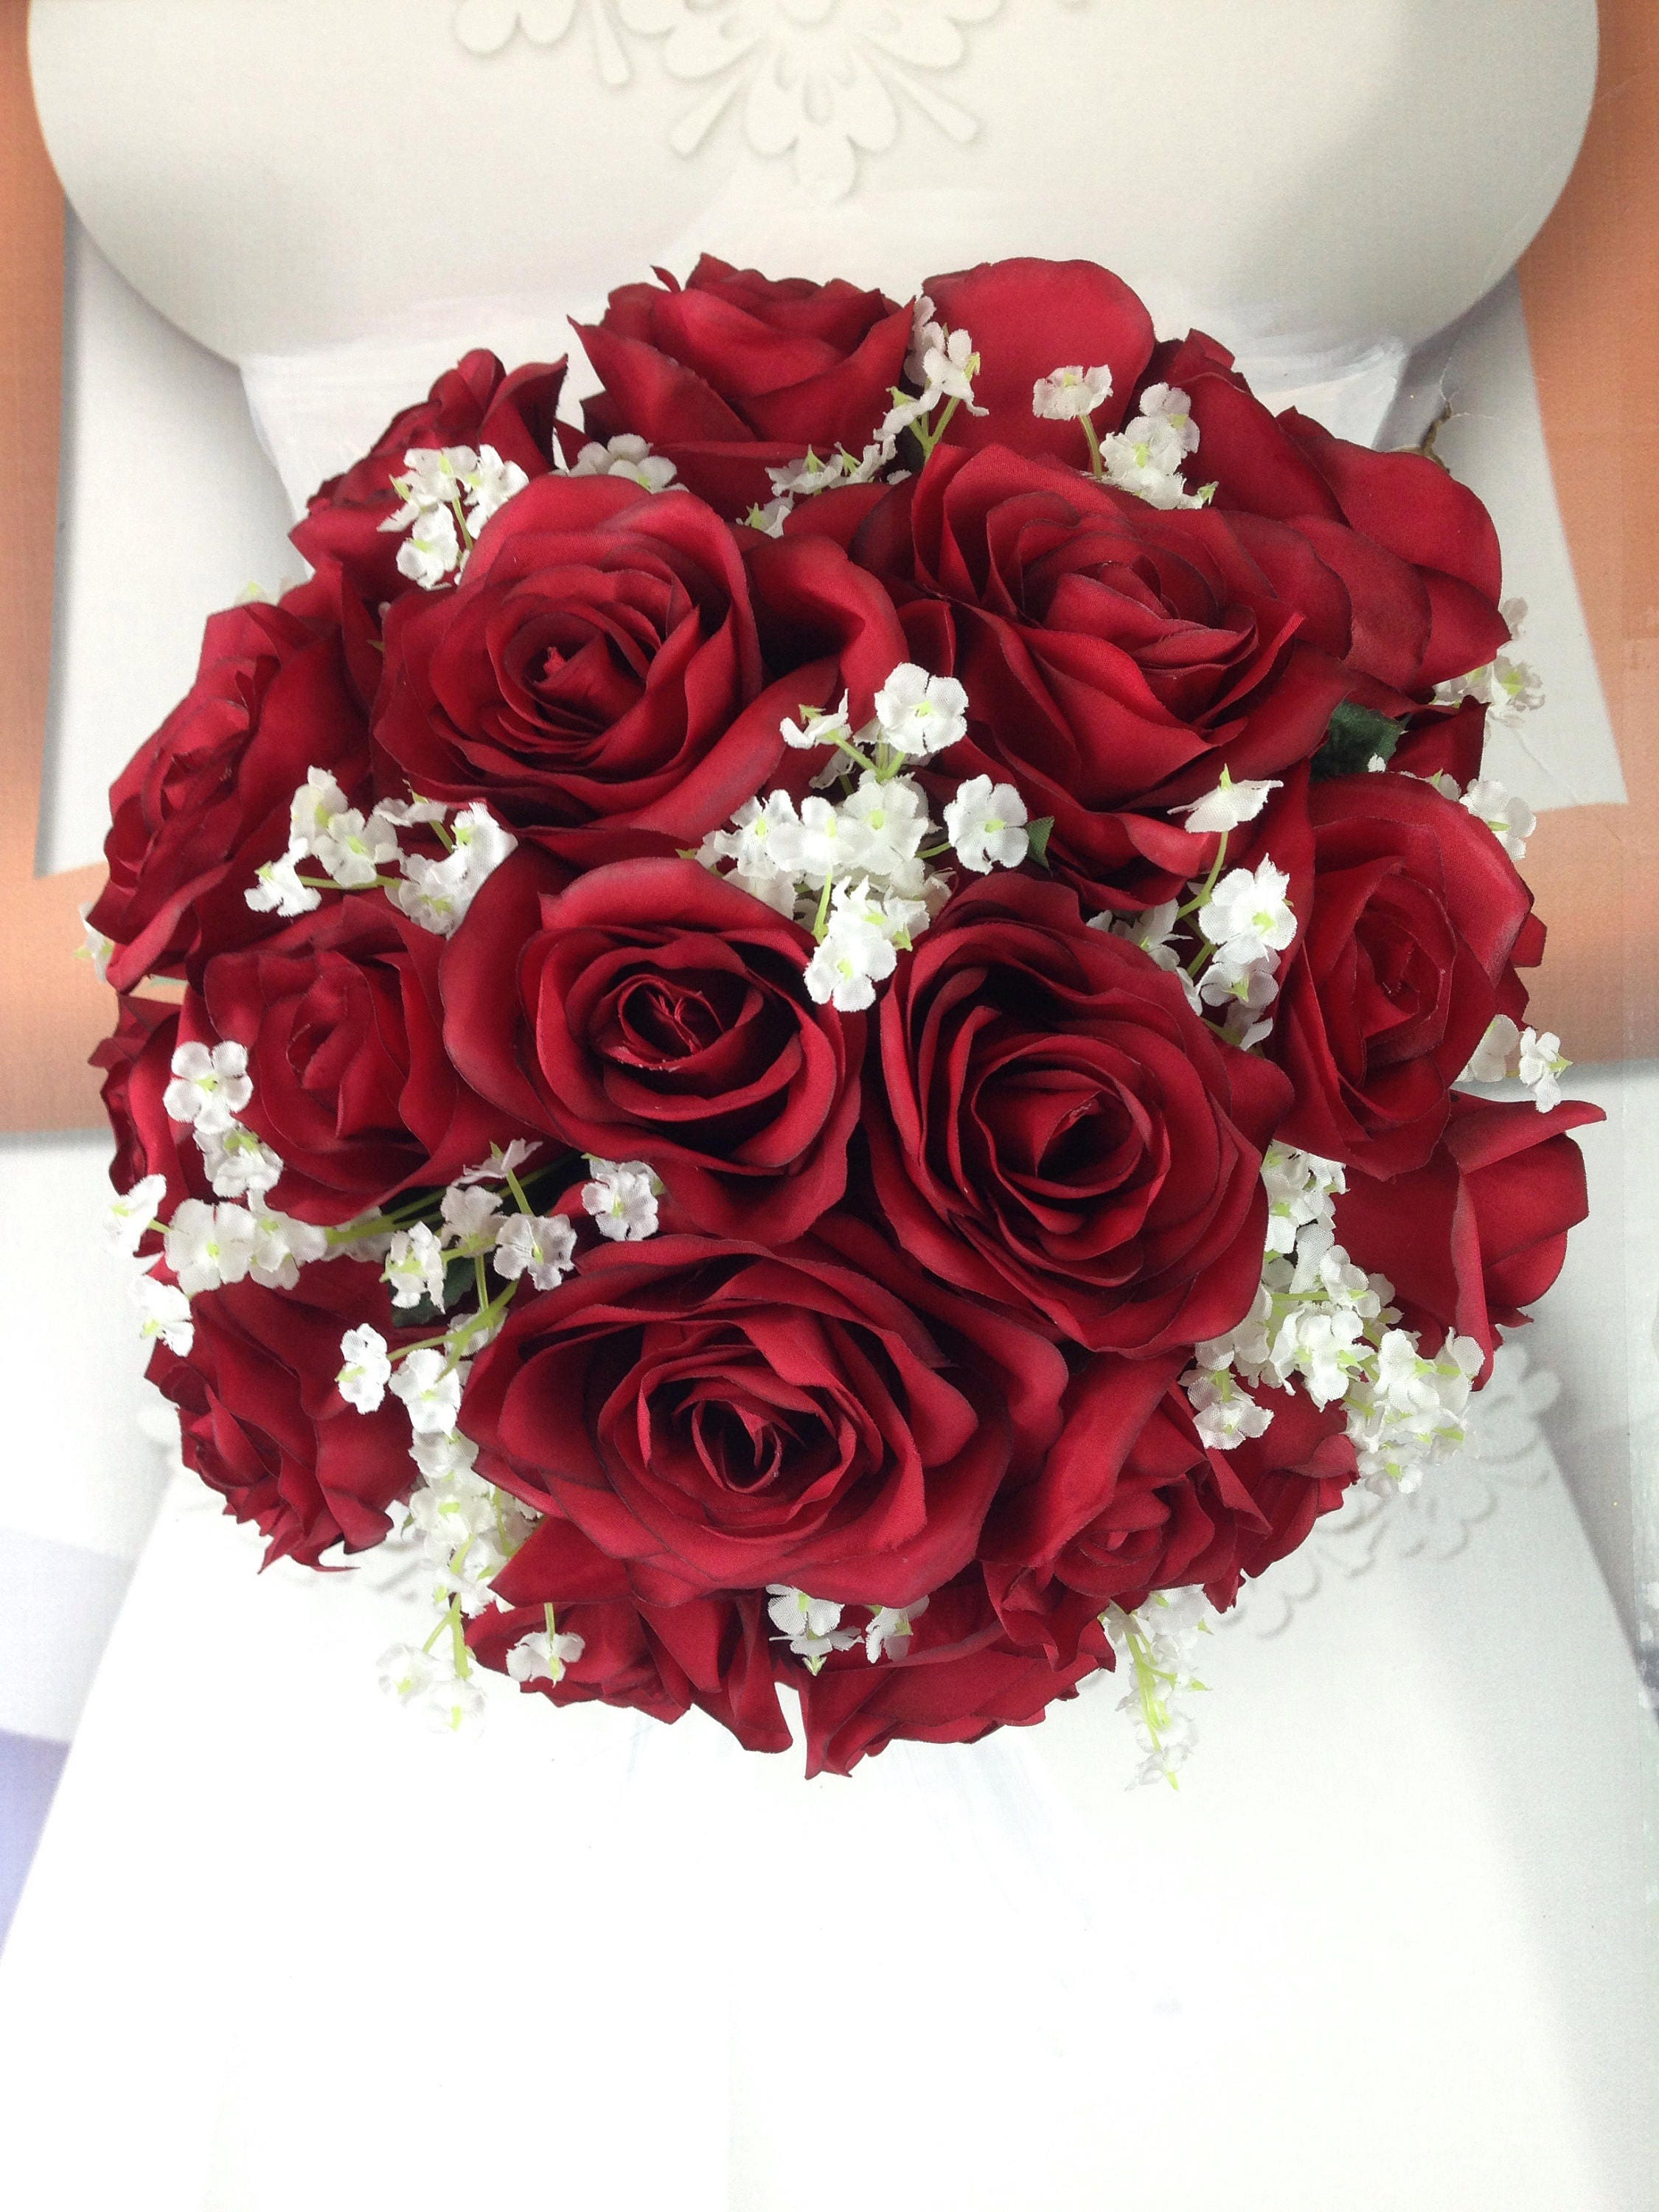 New artificial apple red wedding round bouquet 11 in diameter gallery photo izmirmasajfo